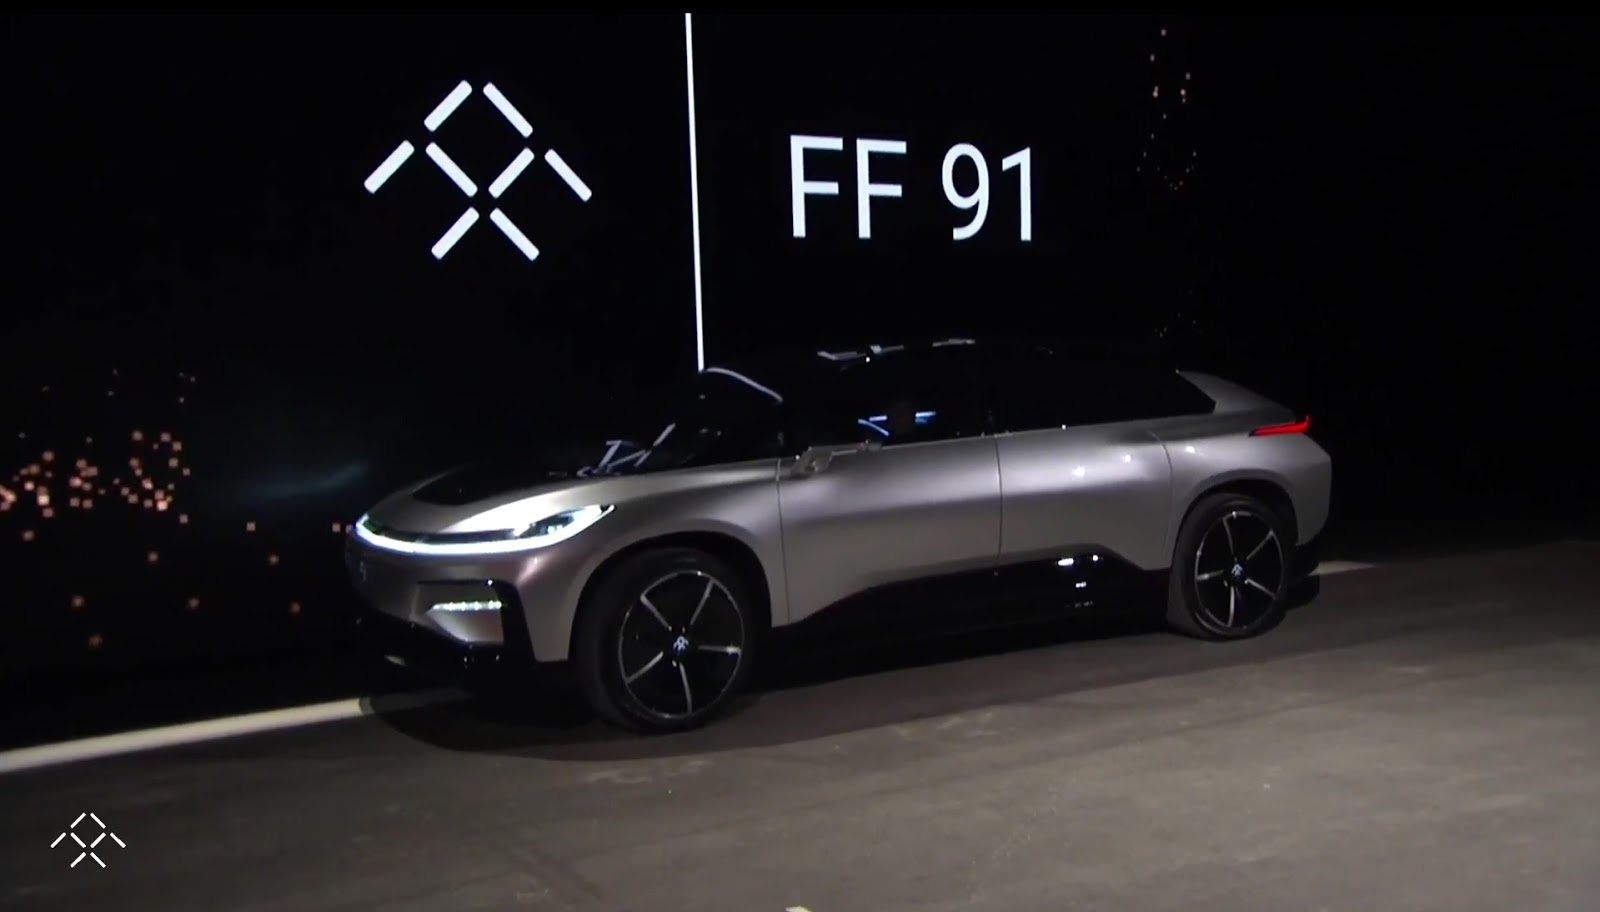 Faraday Future FF 91 — фотогалерея